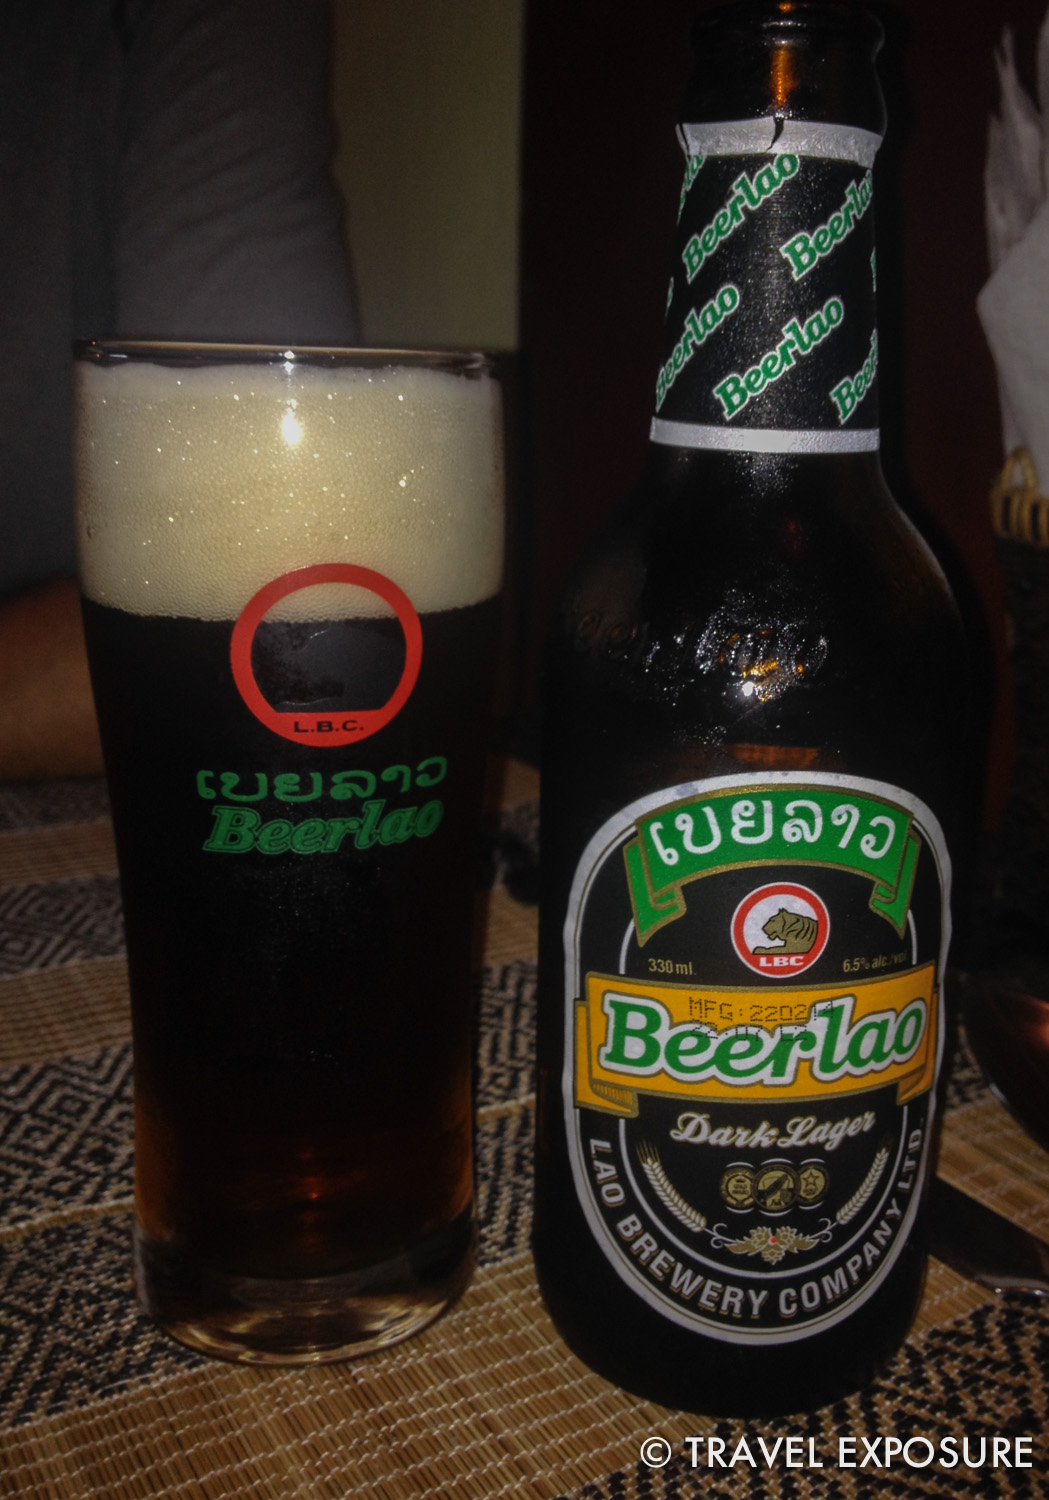 In Lao, this dark lager wins my best beer in Asia award